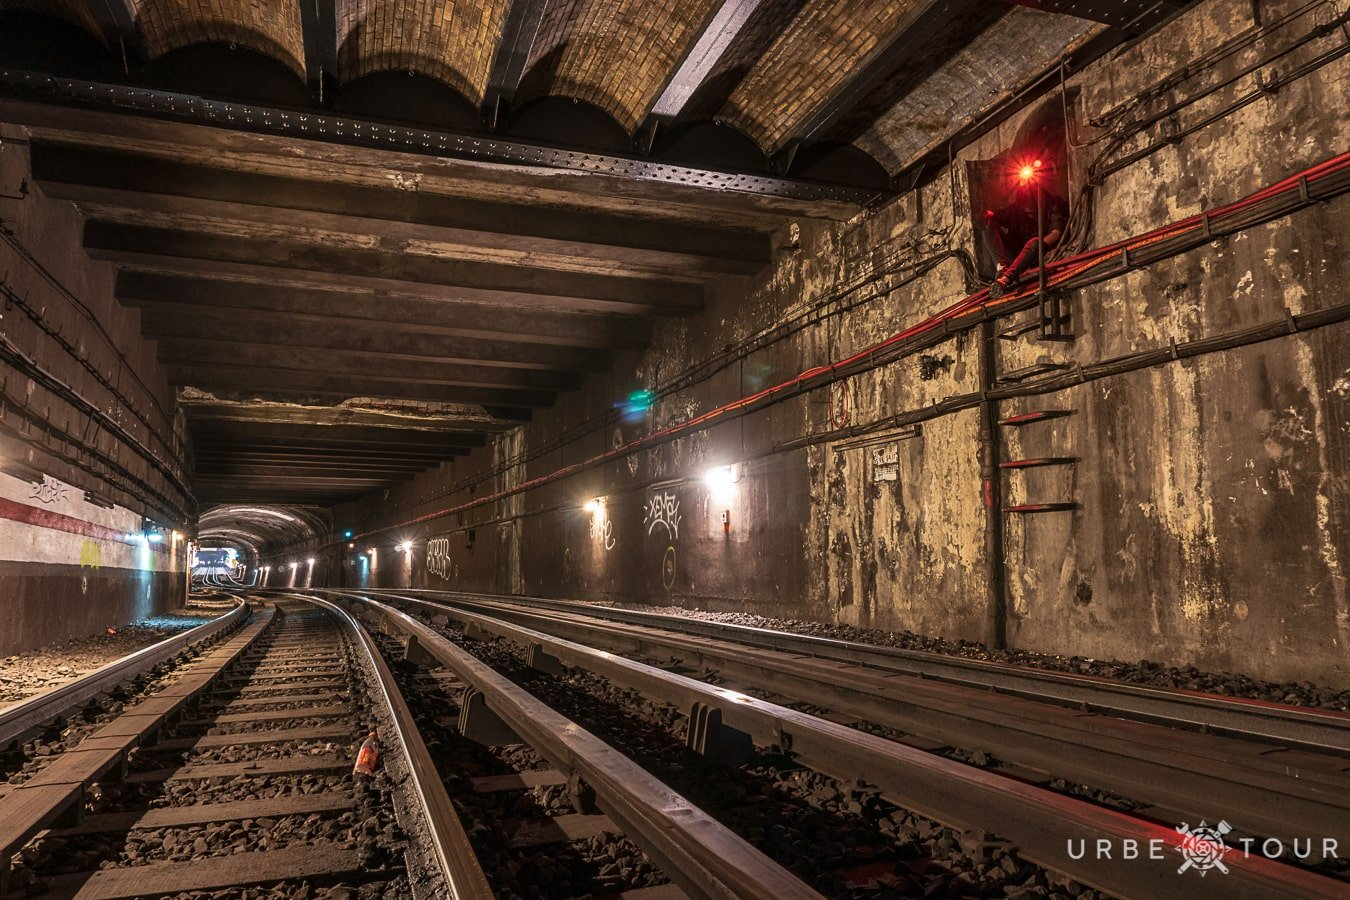 paris-metro-exploration-2018-37-min EXPLORING PARIS METRO: THREE LINES CROSSING CAMERA UNDER OPERA